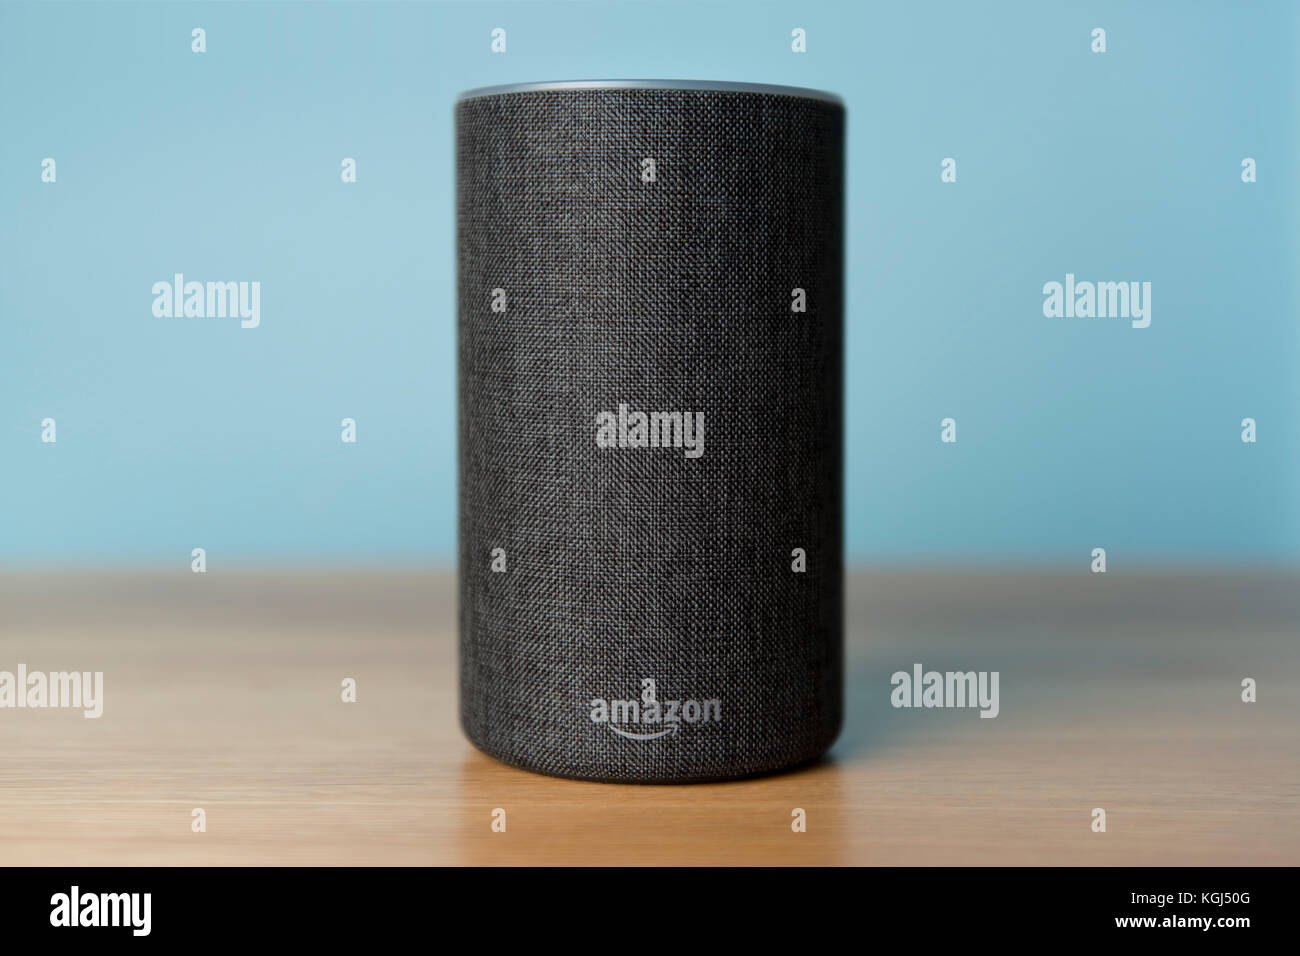 The 2017 release of a charcoal Amazon Echo (2nd generation) smart speaker and personal assistant Alexa shot against - Stock Image